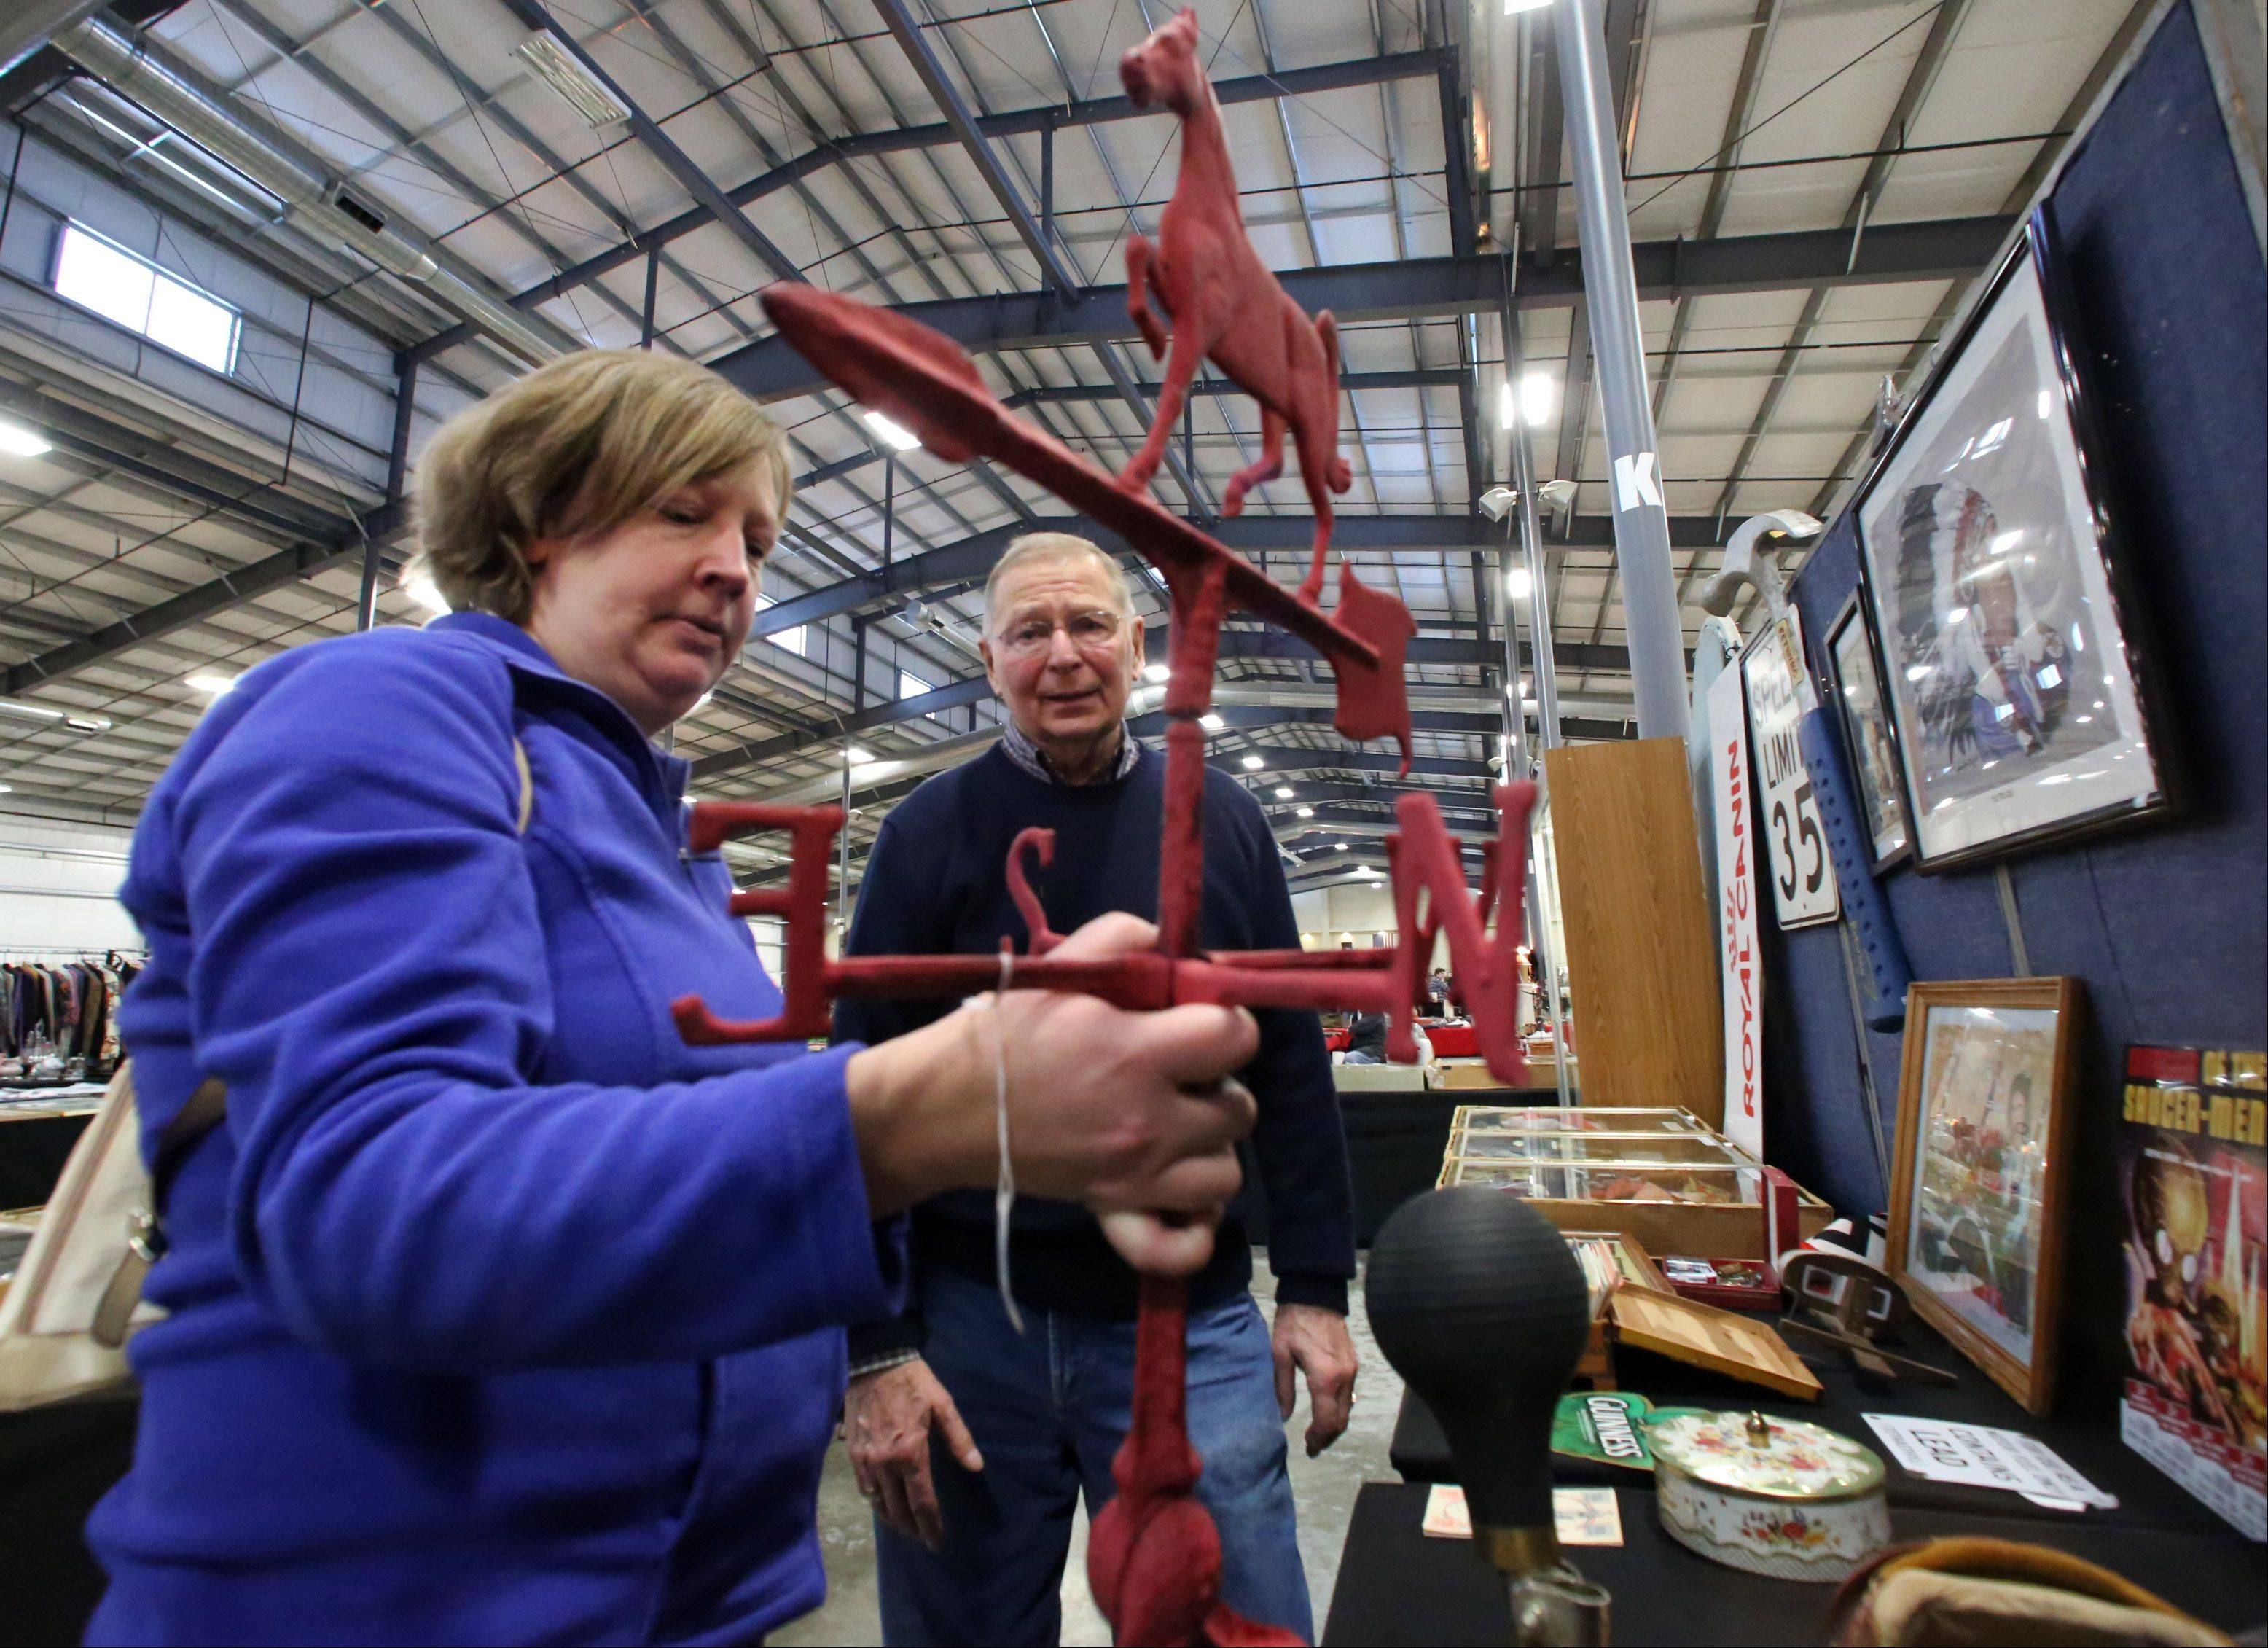 Julie Harding of Libertyville purchases a 1915 weather vane that was used at a Wisconsin farm from Bob Potasnik of Bonduel, Wis., at Zurko Antiques and Flea Market on Saturday at Lake County Fairgrounds in Grayslake.